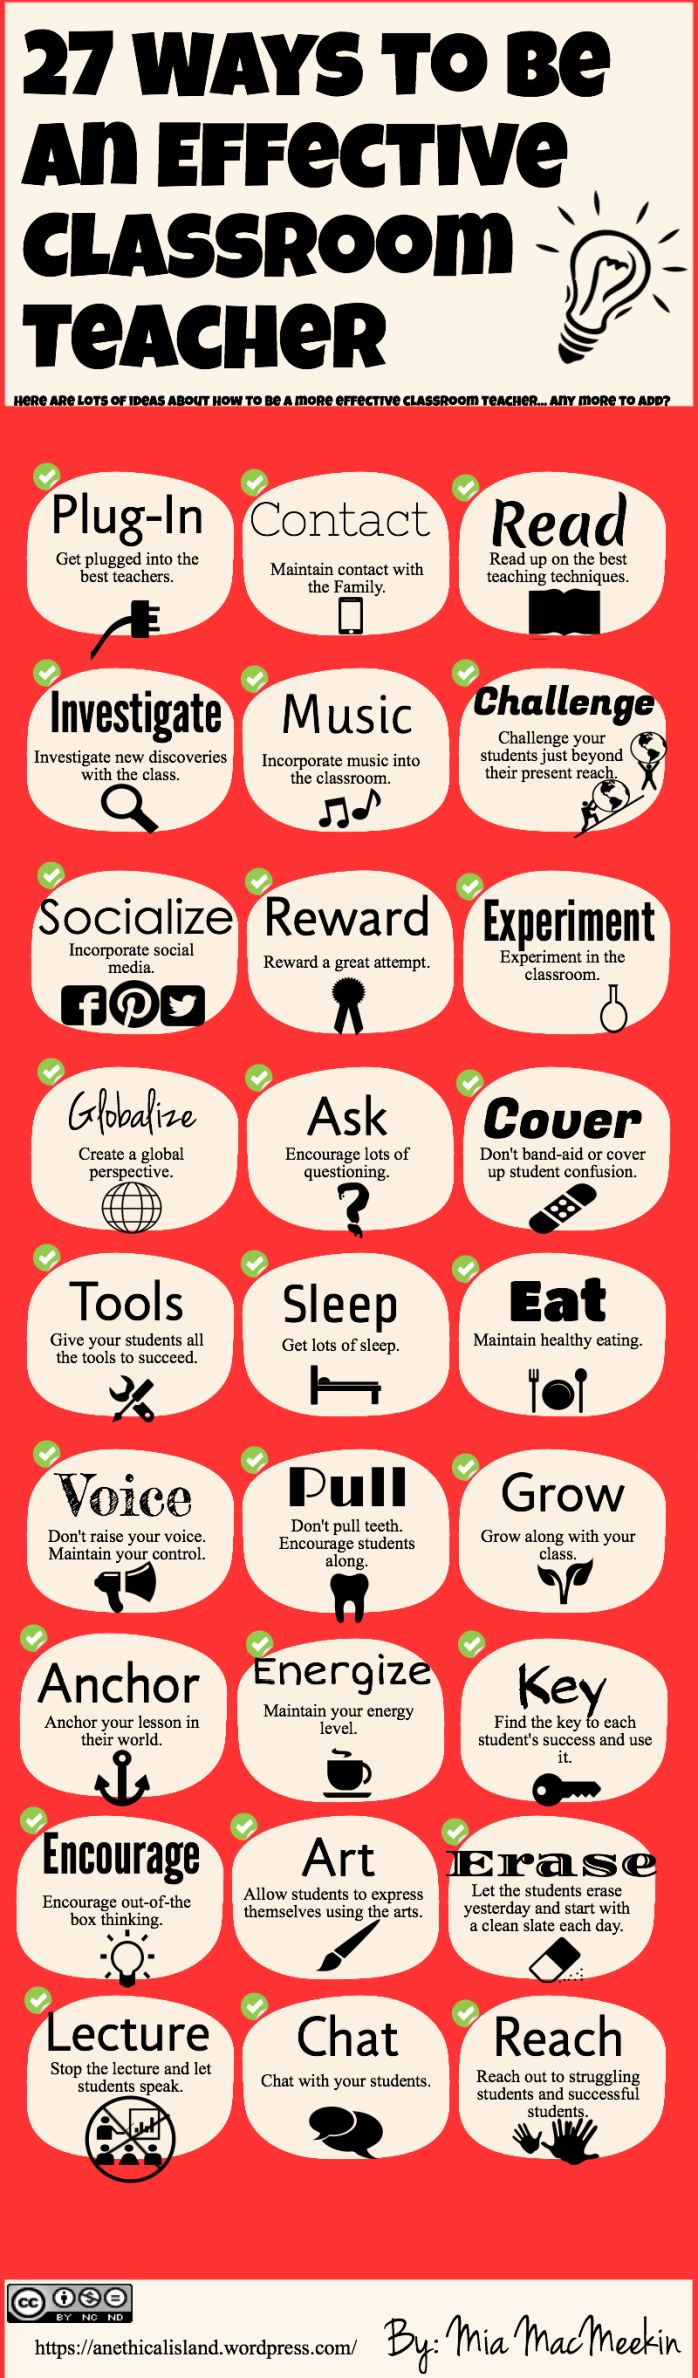 Ways to be an effective classroom teacher